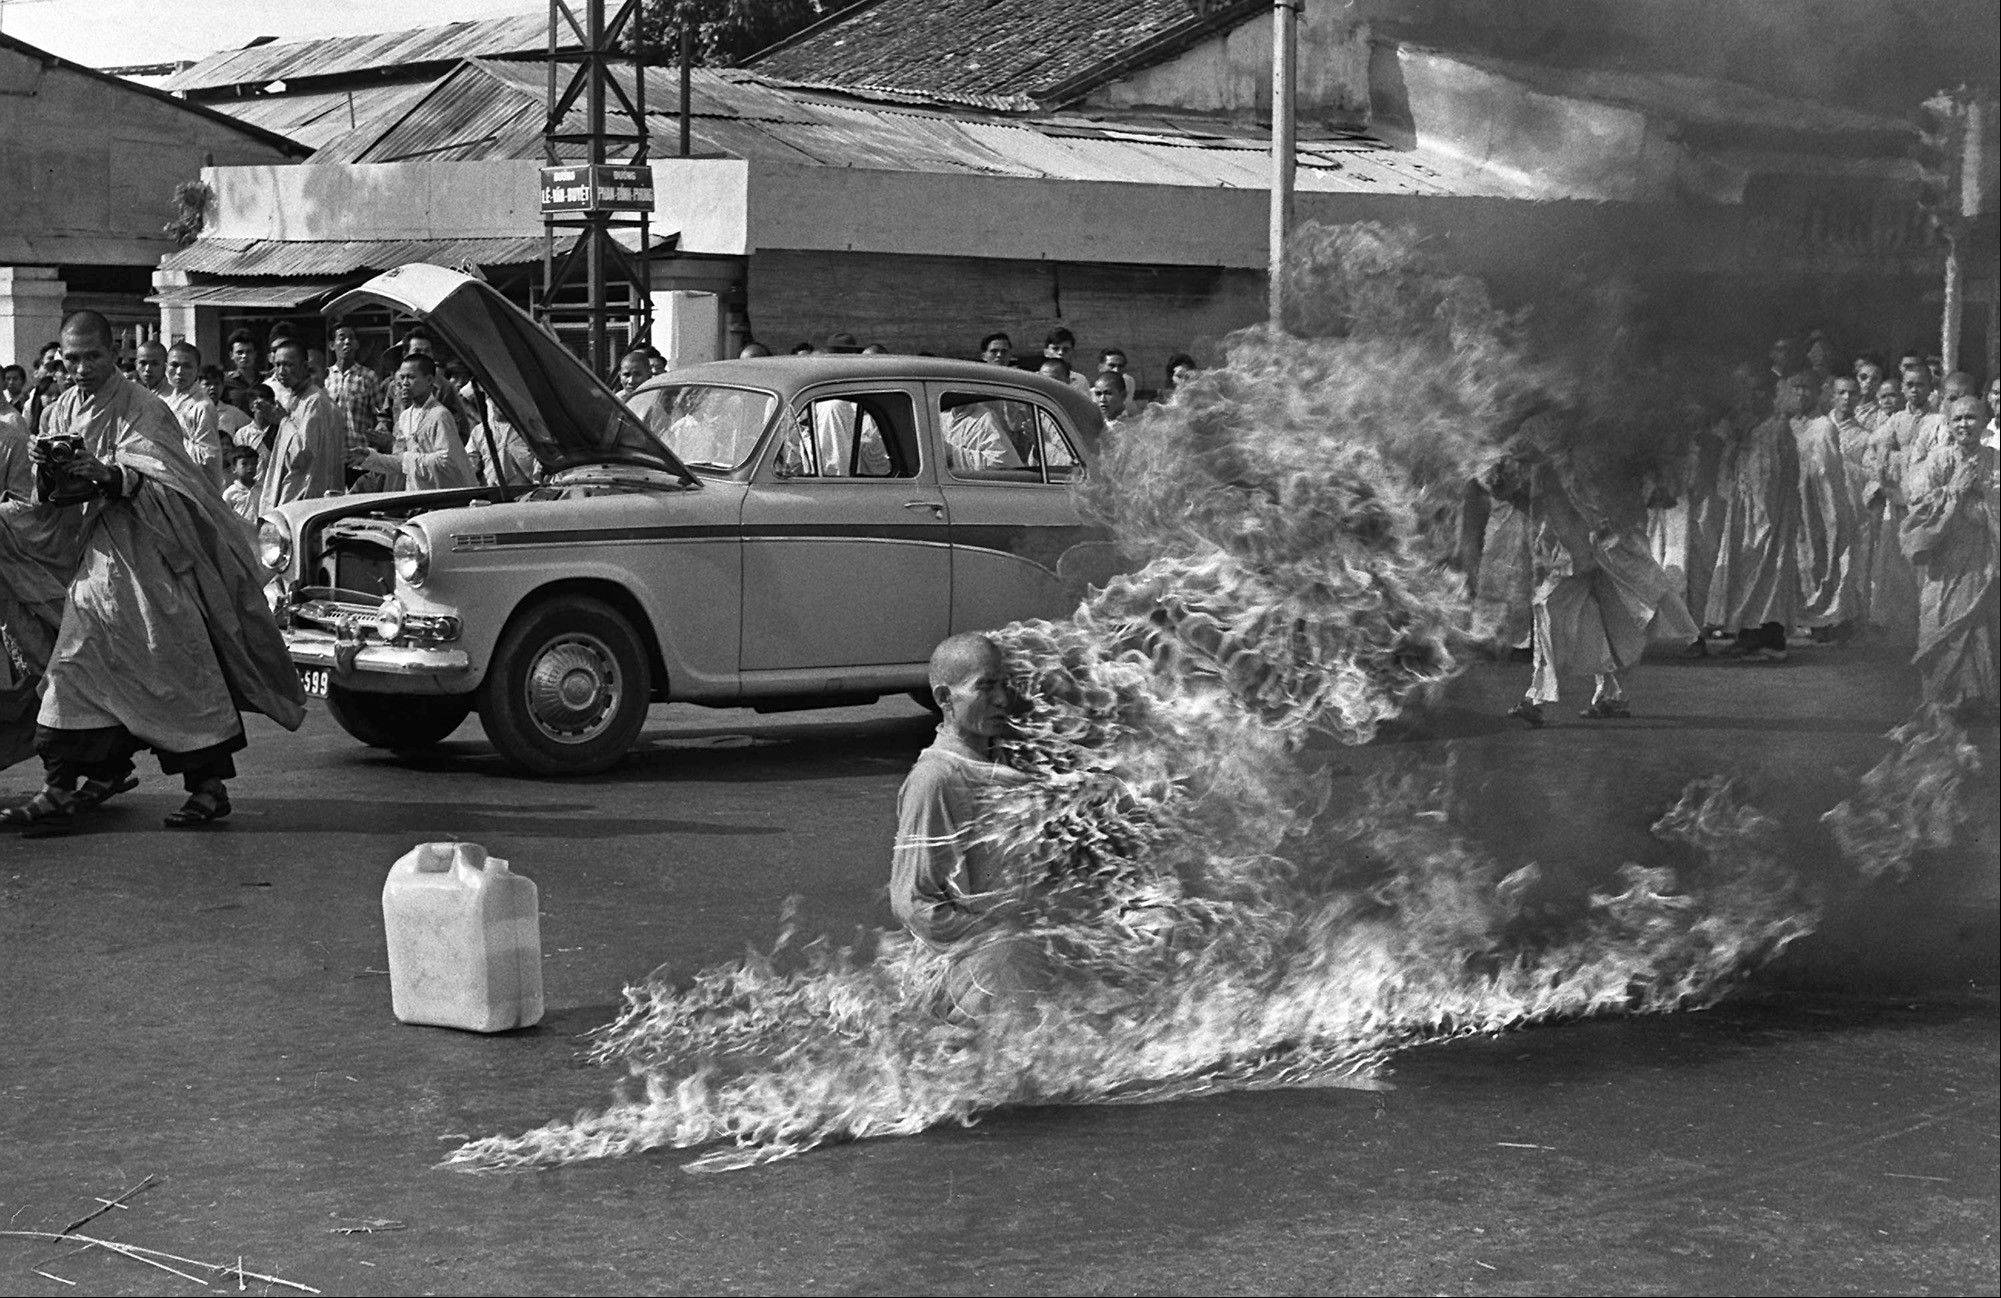 Thich Quang Duc, a Buddhist monk, burns himself to death on a Saigon street in 1963 to protest alleged persecution of Buddhists by the South Vietnamese government.